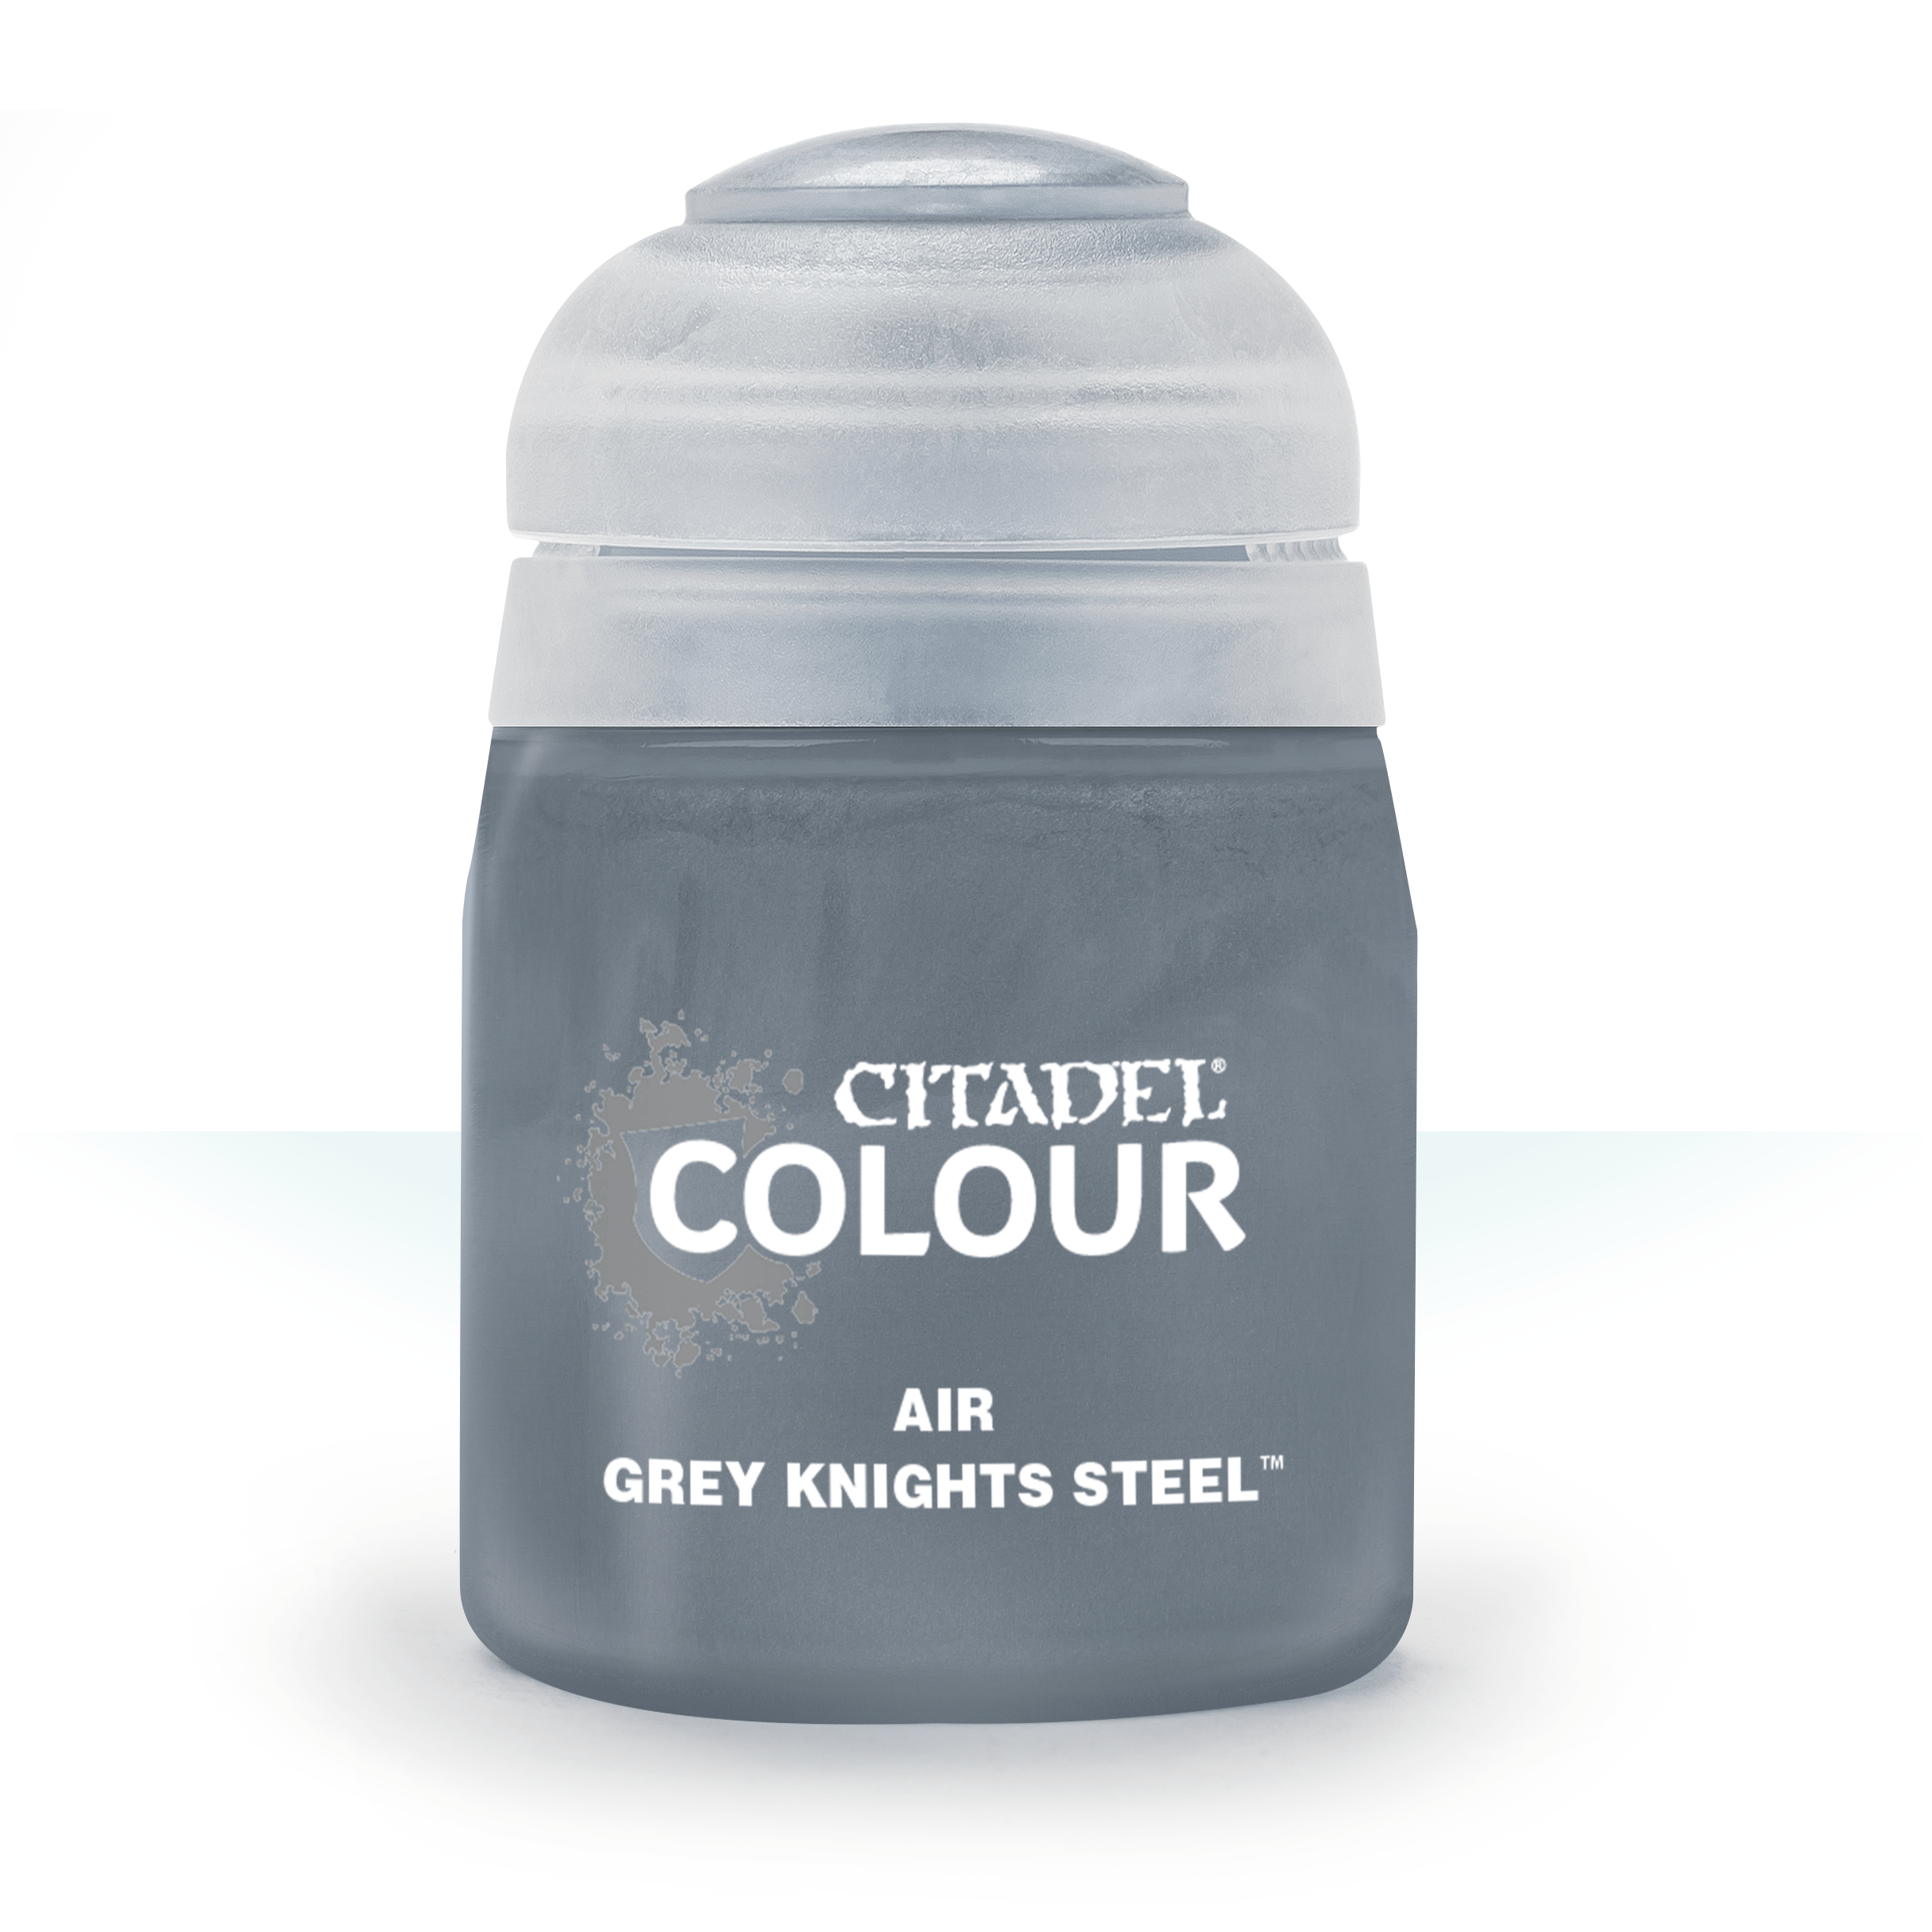 Citadel Airbrush Paints: Grey Knights Steel